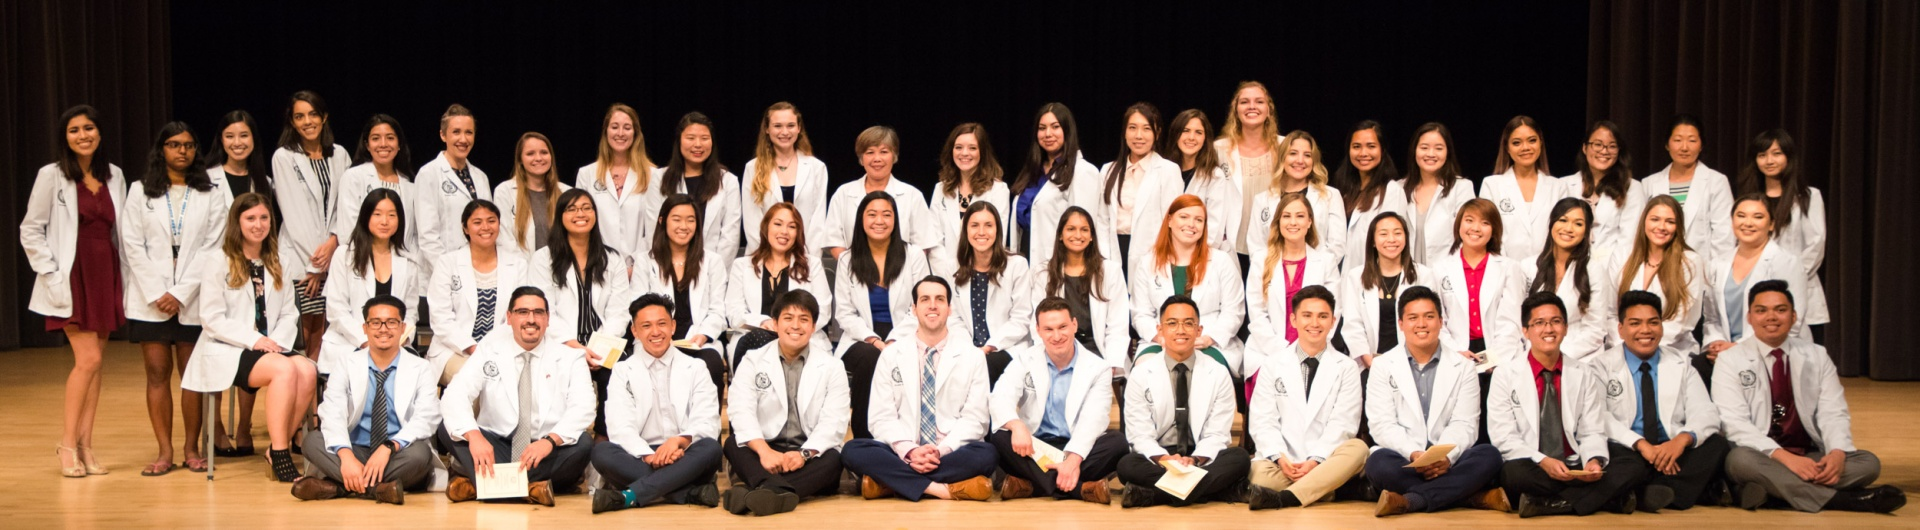 Nursing students receive white coats